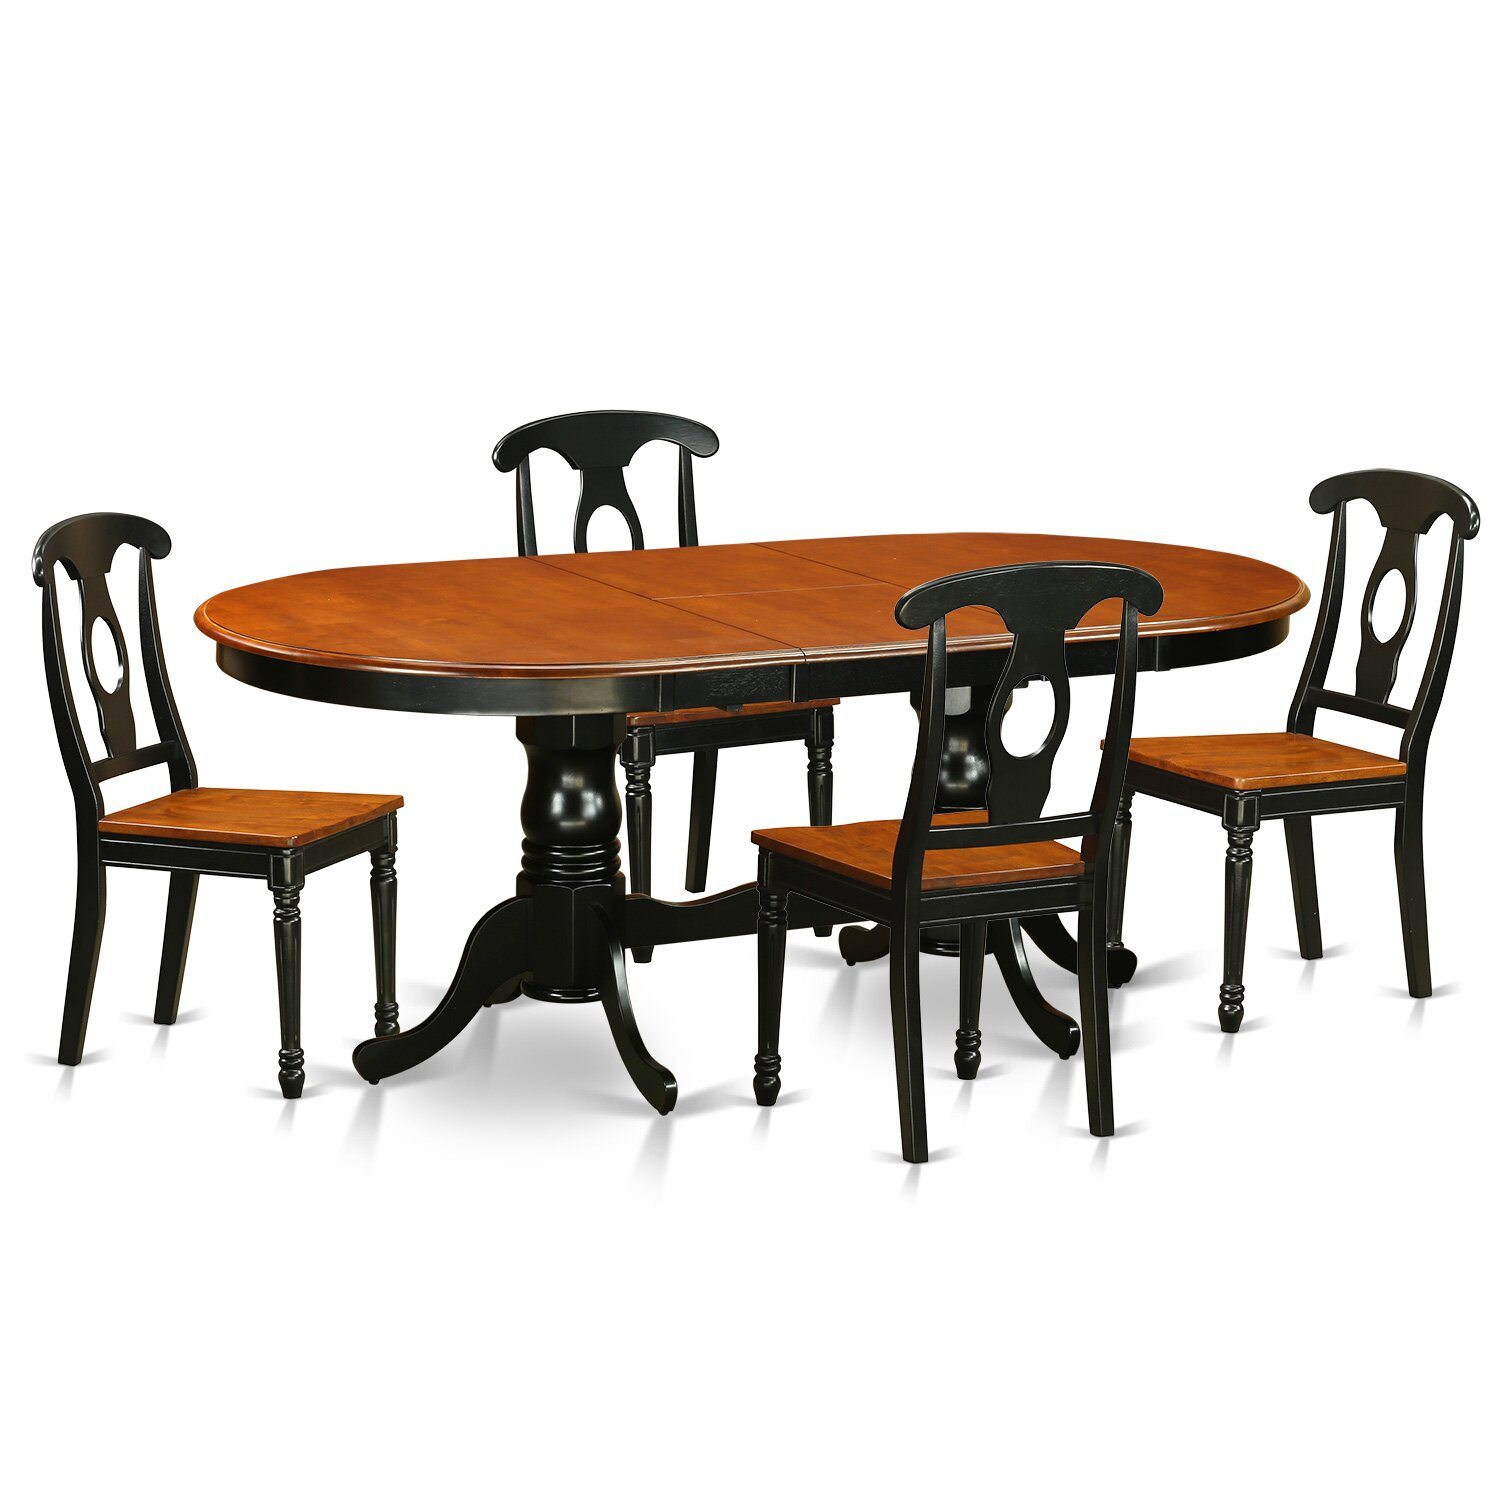 Kitchen And Dining Online ShoppingMost Effective  : 5 PC Dining Room Set Dining Table with 4 Wood Dining Chairs PLKE5 BCH from leparadisduson.com size 1500 x 1500 jpeg 145kB